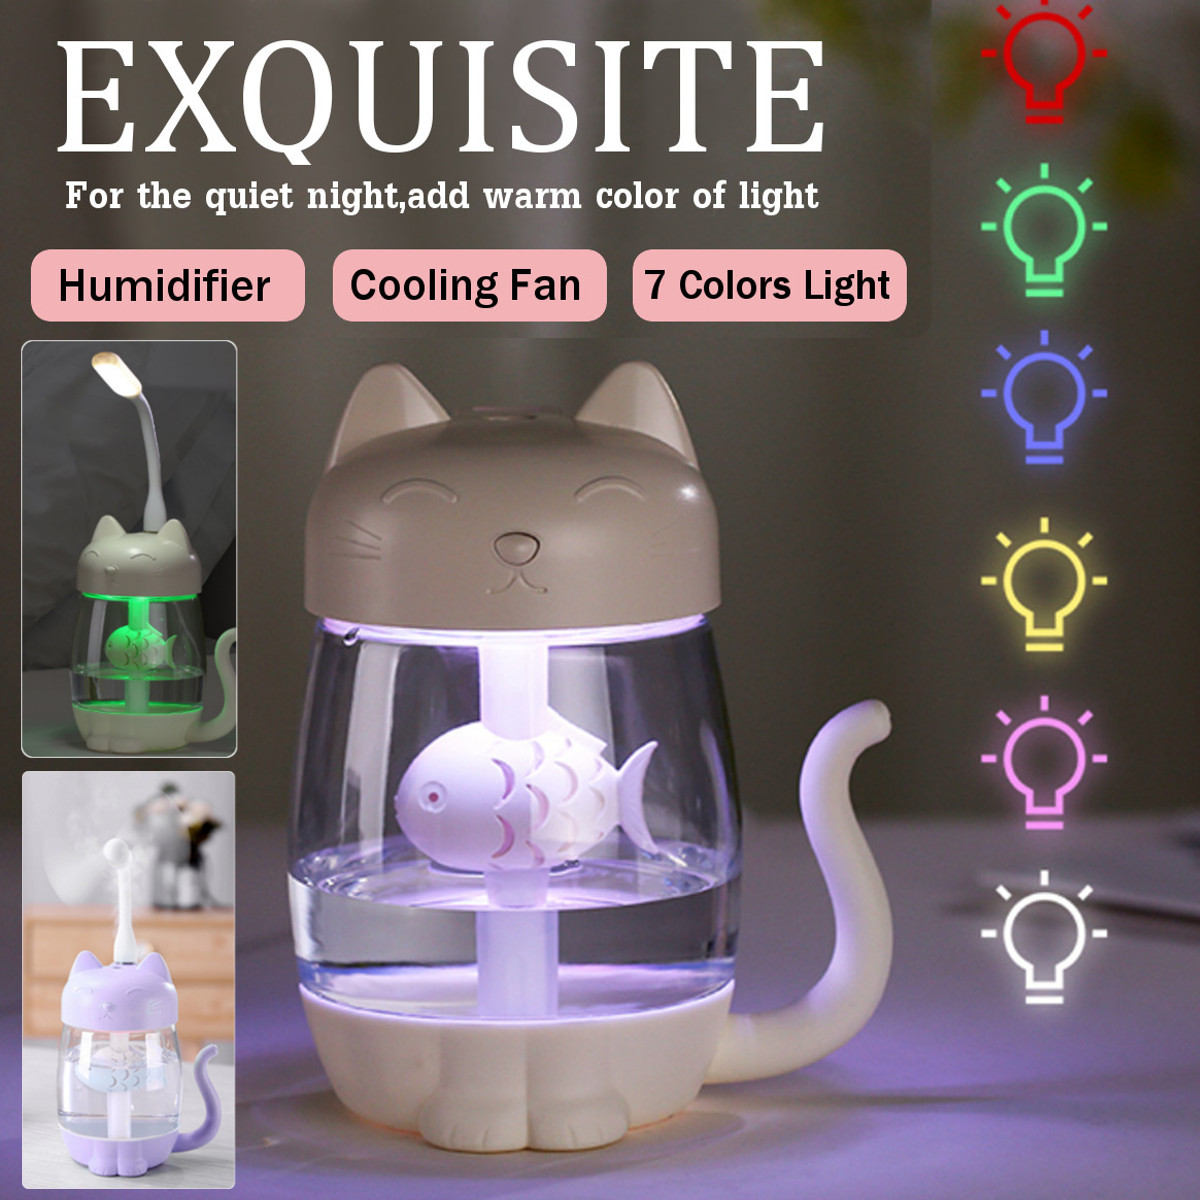 3 in 1 350ML USB Cat Air Humidifier Ultrasonic Cool-Mist Adorable Mini Humidifier With LED Light Mini USB Fan for Home office3 in 1 350ML USB Cat Air Humidifier Ultrasonic Cool-Mist Adorable Mini Humidifier With LED Light Mini USB Fan for Home office